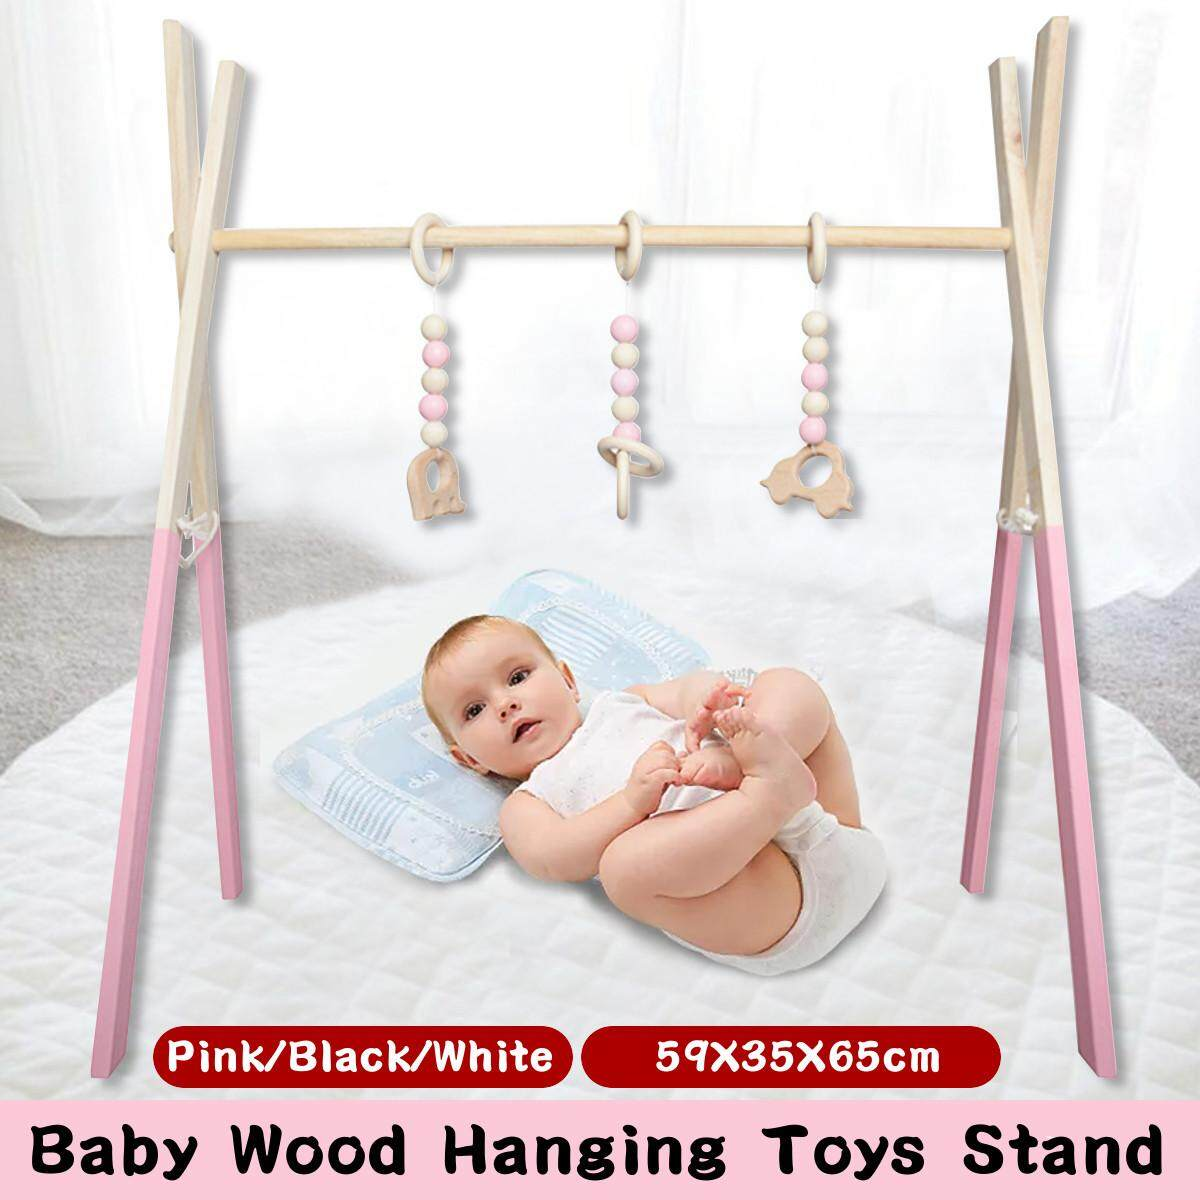 Wood Baby Play Stand Toy Nursery Fun Hanging Toys Mobile Wood Rack Activity Gym Giá Tốt Duy Nhất tại Lazada